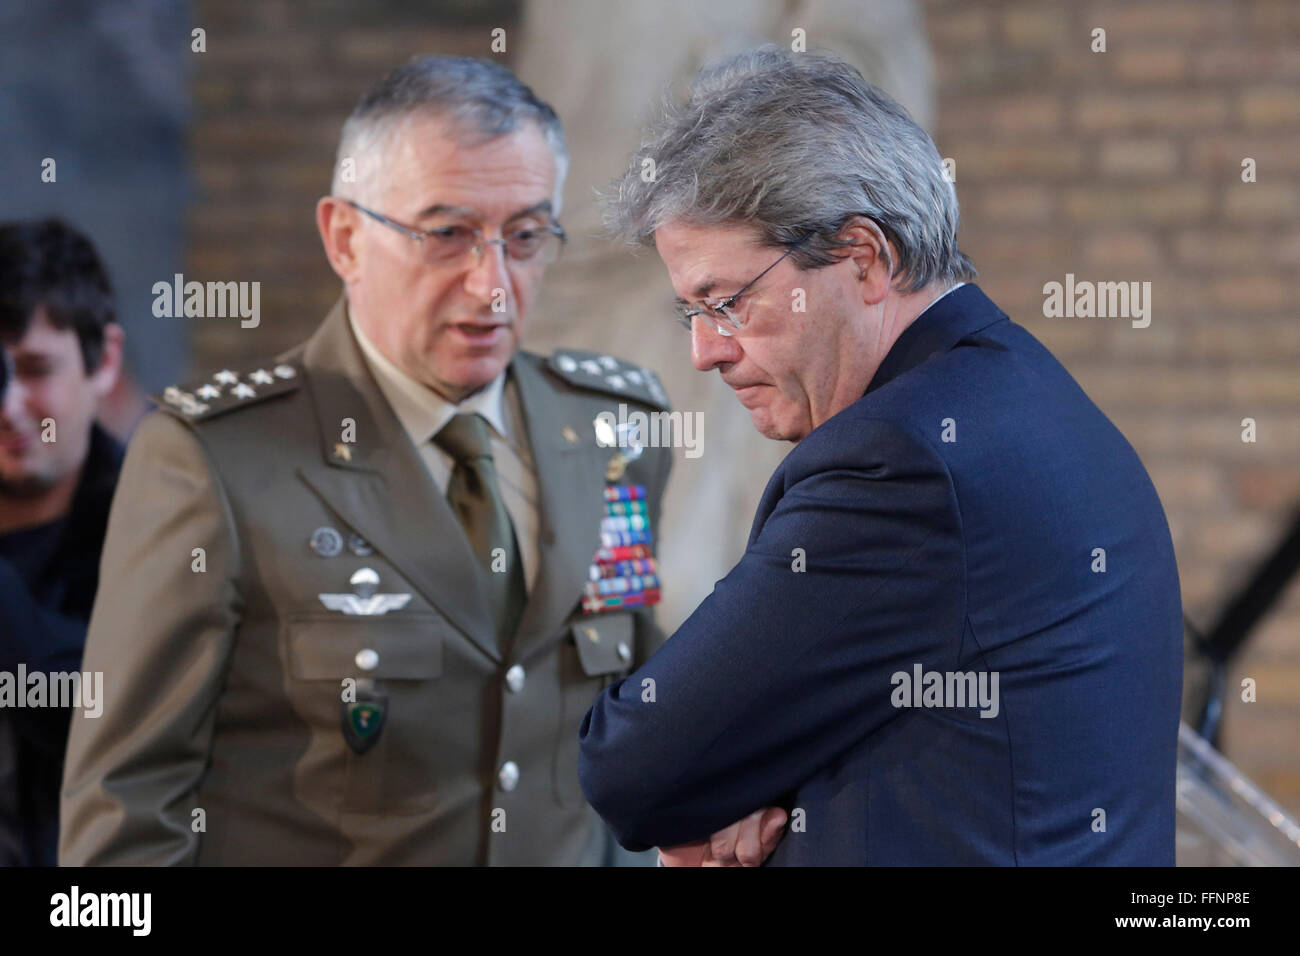 Rome, Italy. 16th February, 2016. Claudio Graziano and Paolo Gentiloni Rome 16th February 2016. Baths of Diocleziano. - Stock Image